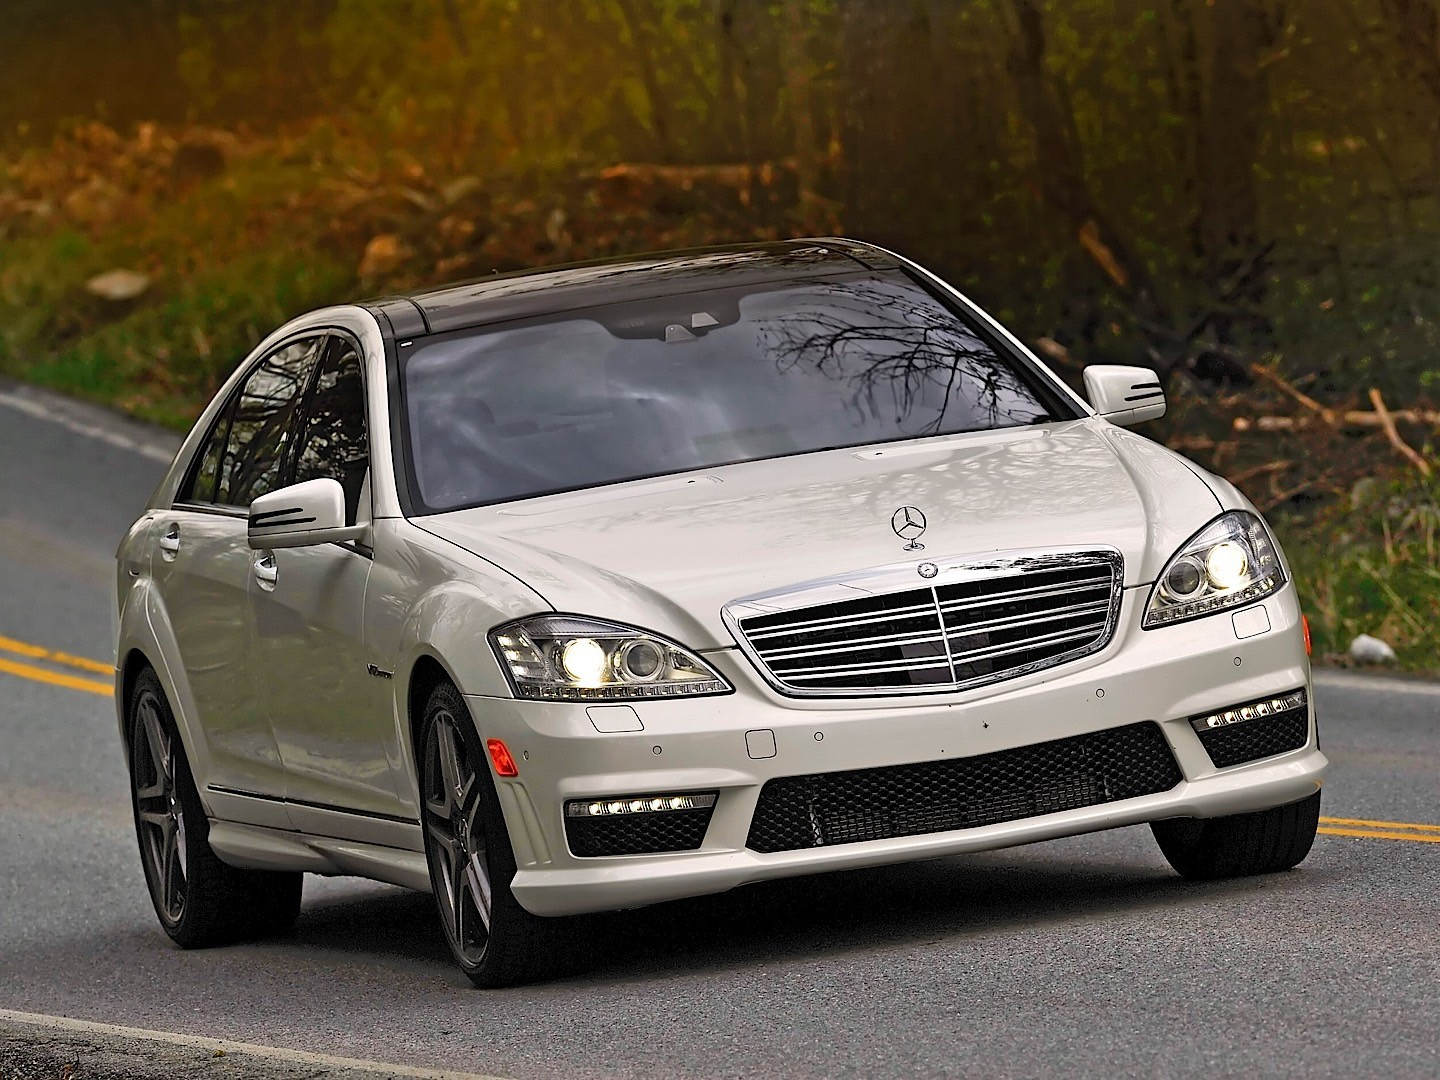 mercedes benz s 65 amg w221 specs photos 2009 2010 2011 2012 2013 autoevolution. Black Bedroom Furniture Sets. Home Design Ideas